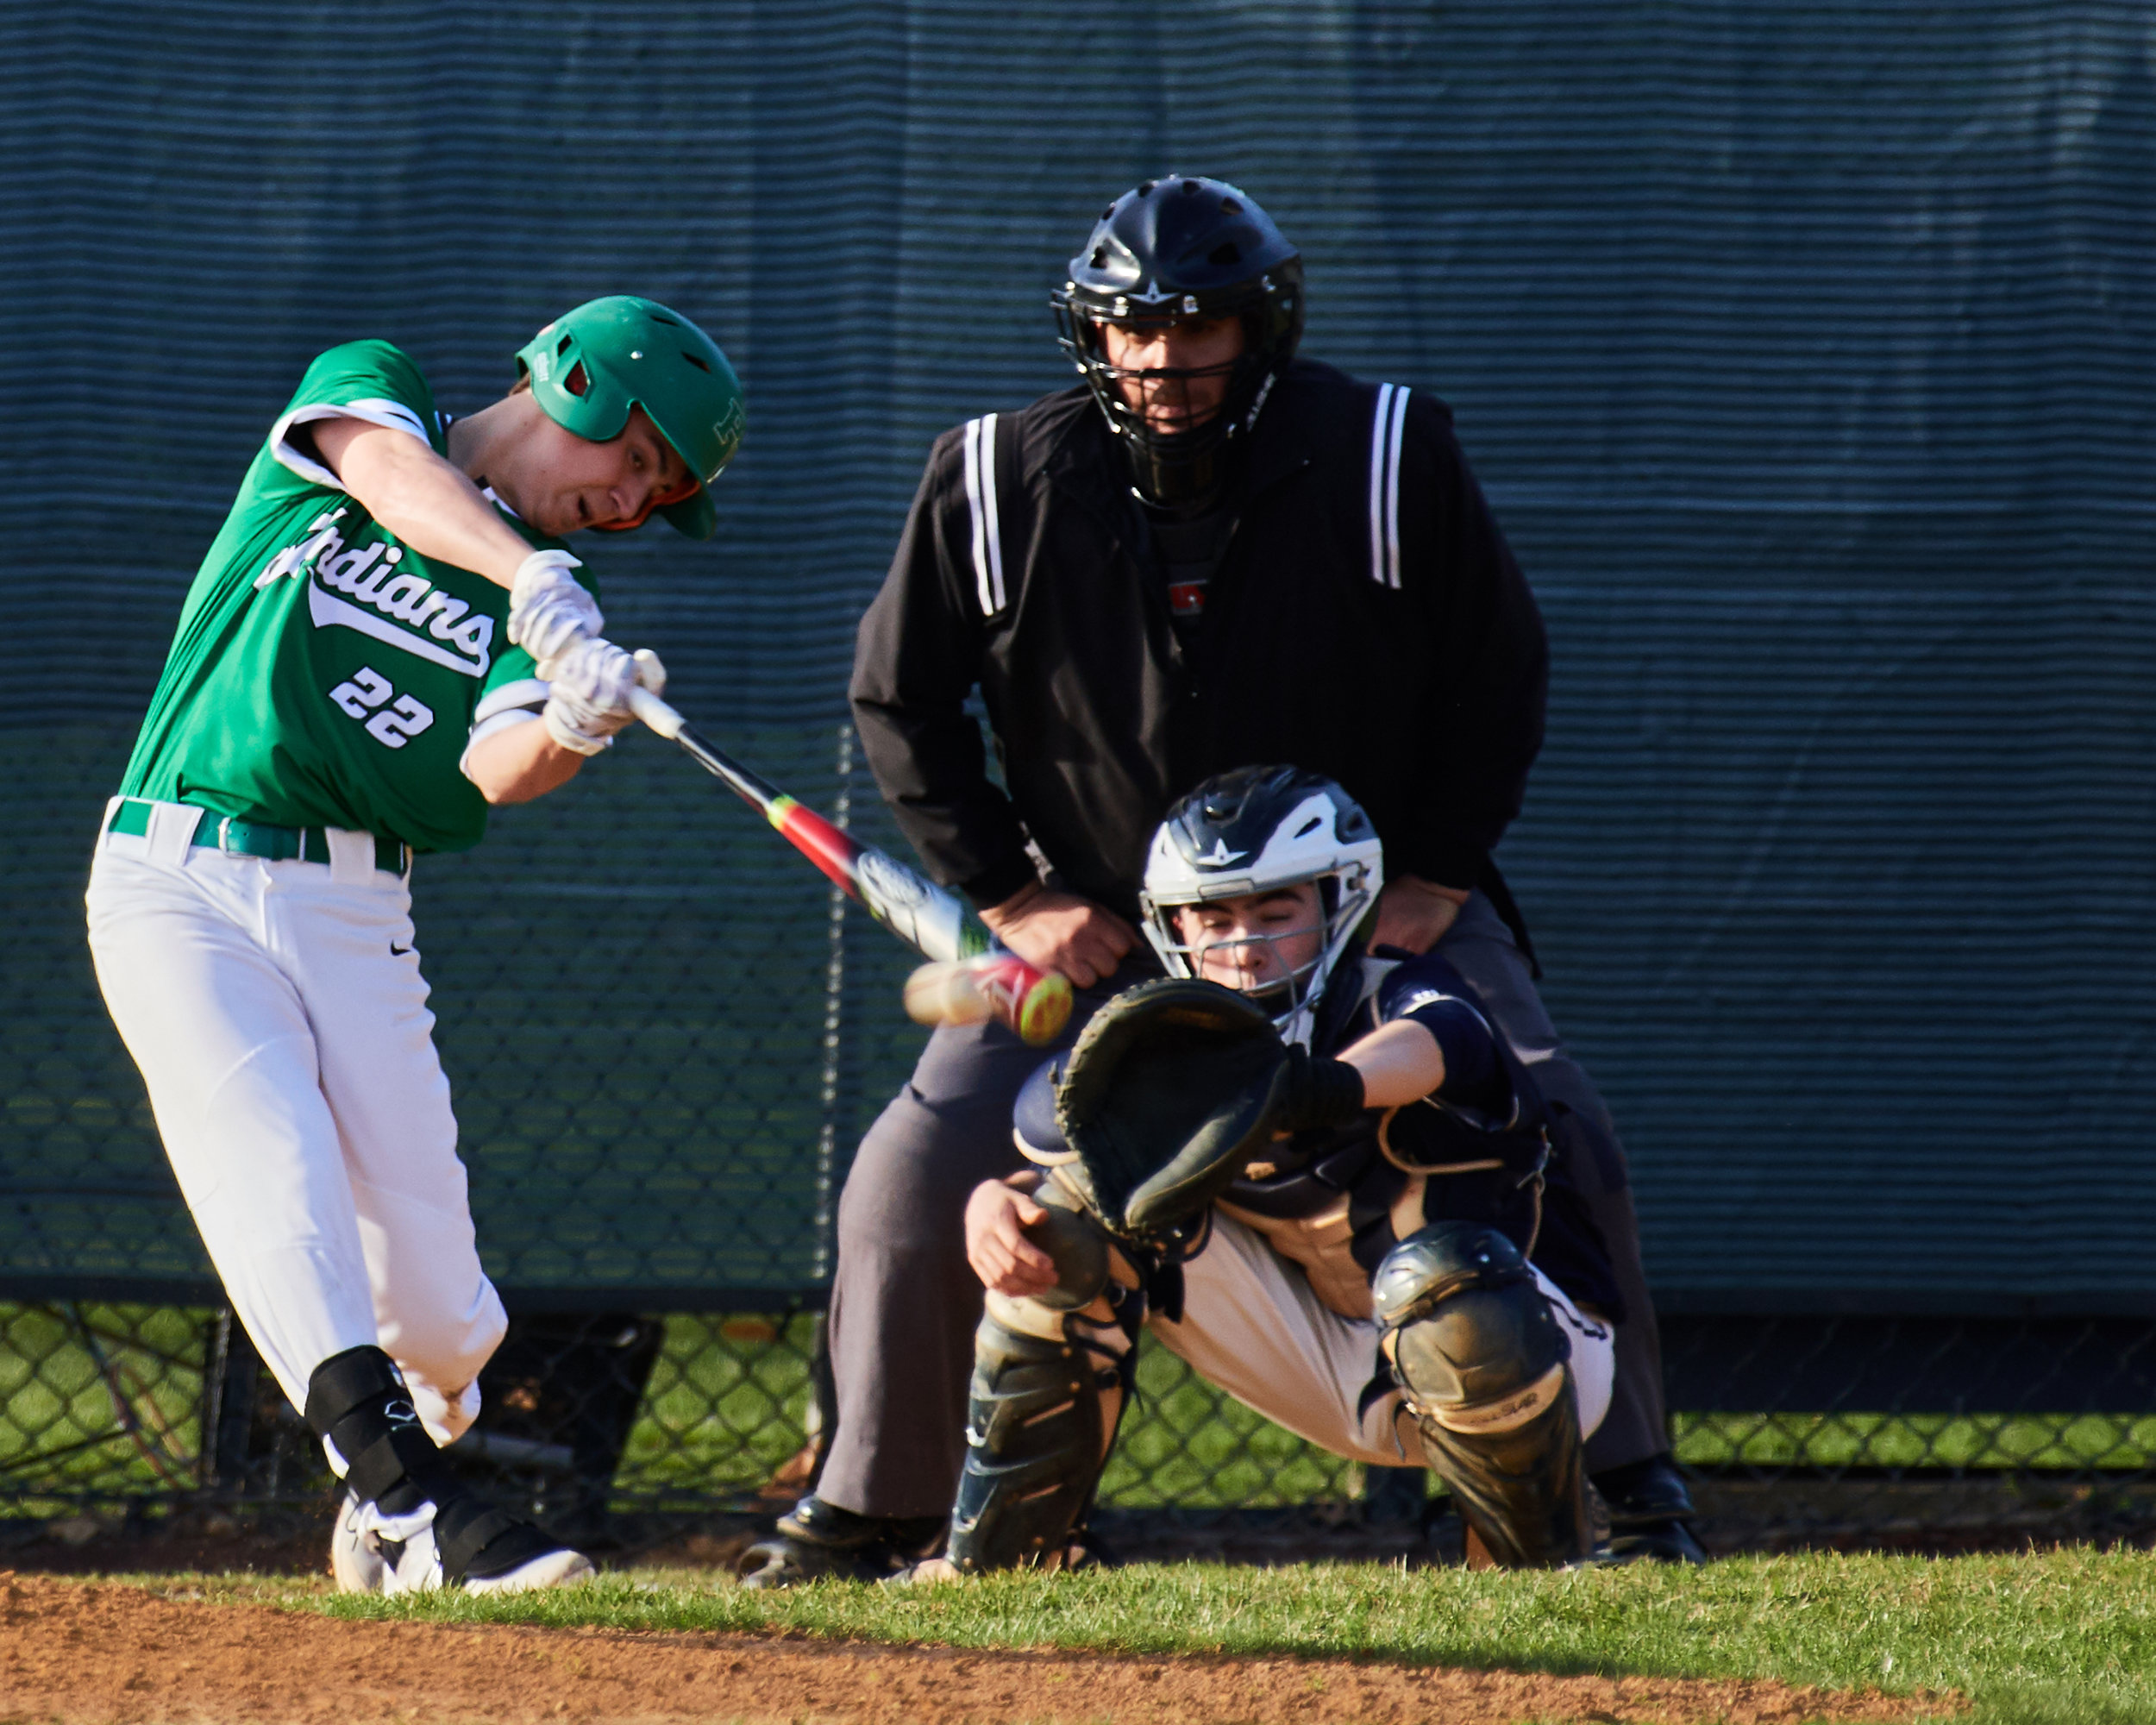 Pascack-Valley-HS-Varsity-Boys-Baseball-2017--0140.jpg